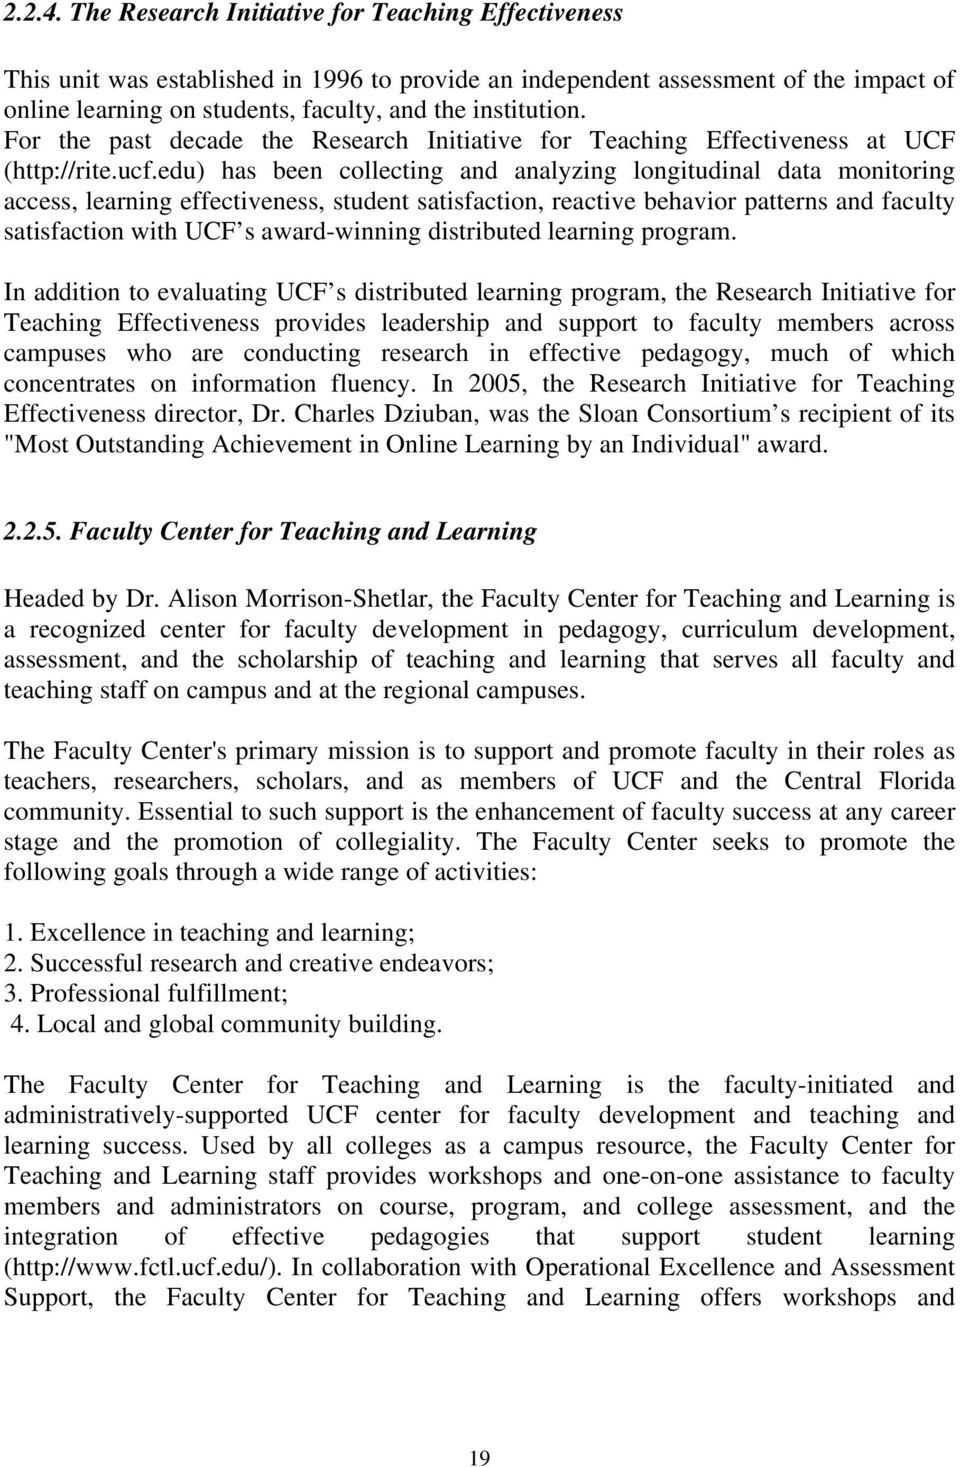 For the past decade the Research Initiative for Teaching Effectiveness at UCF (http://rite.ucf.